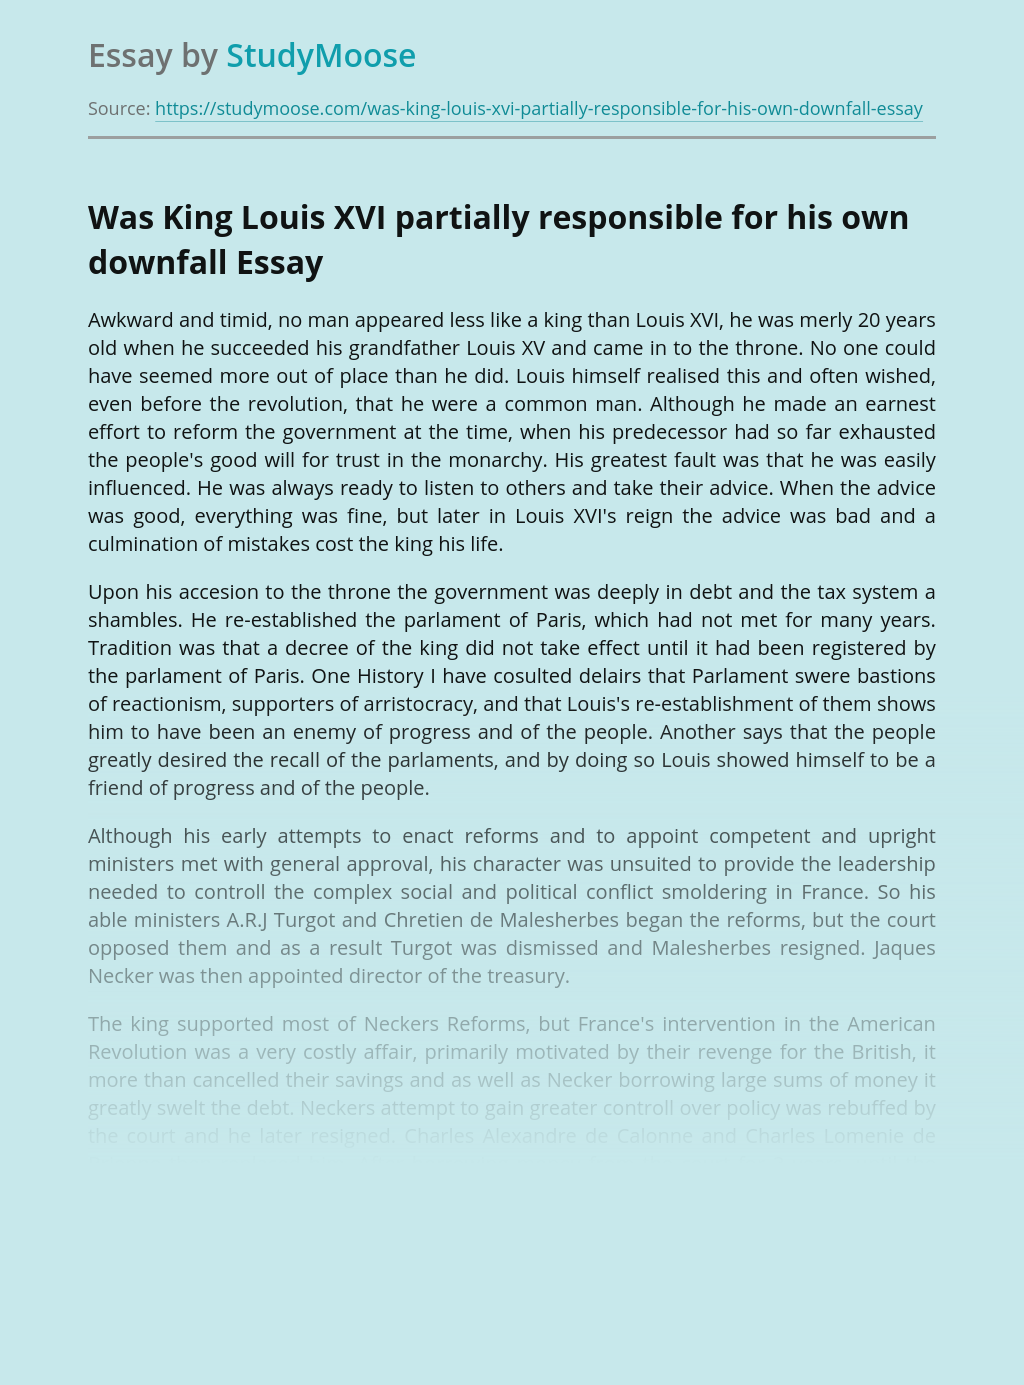 Was King Louis XVI Partially Responsible For His Own Downfall